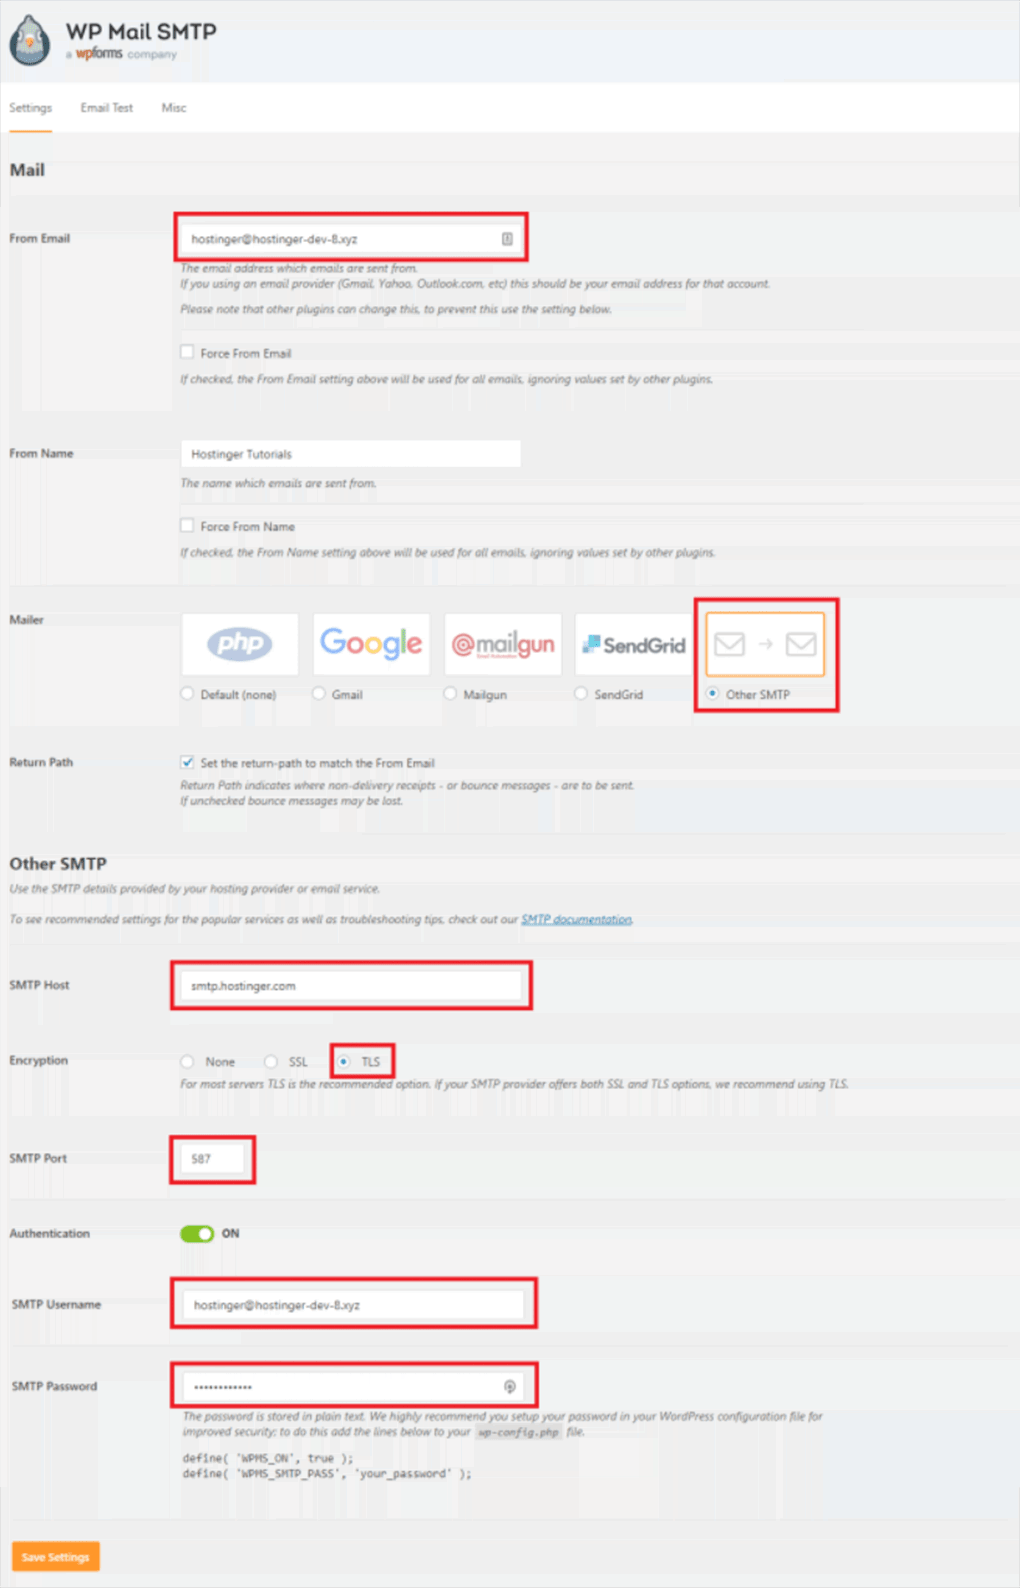 preenchimento dos dados de email no plugin wp mail smtp do wordpress